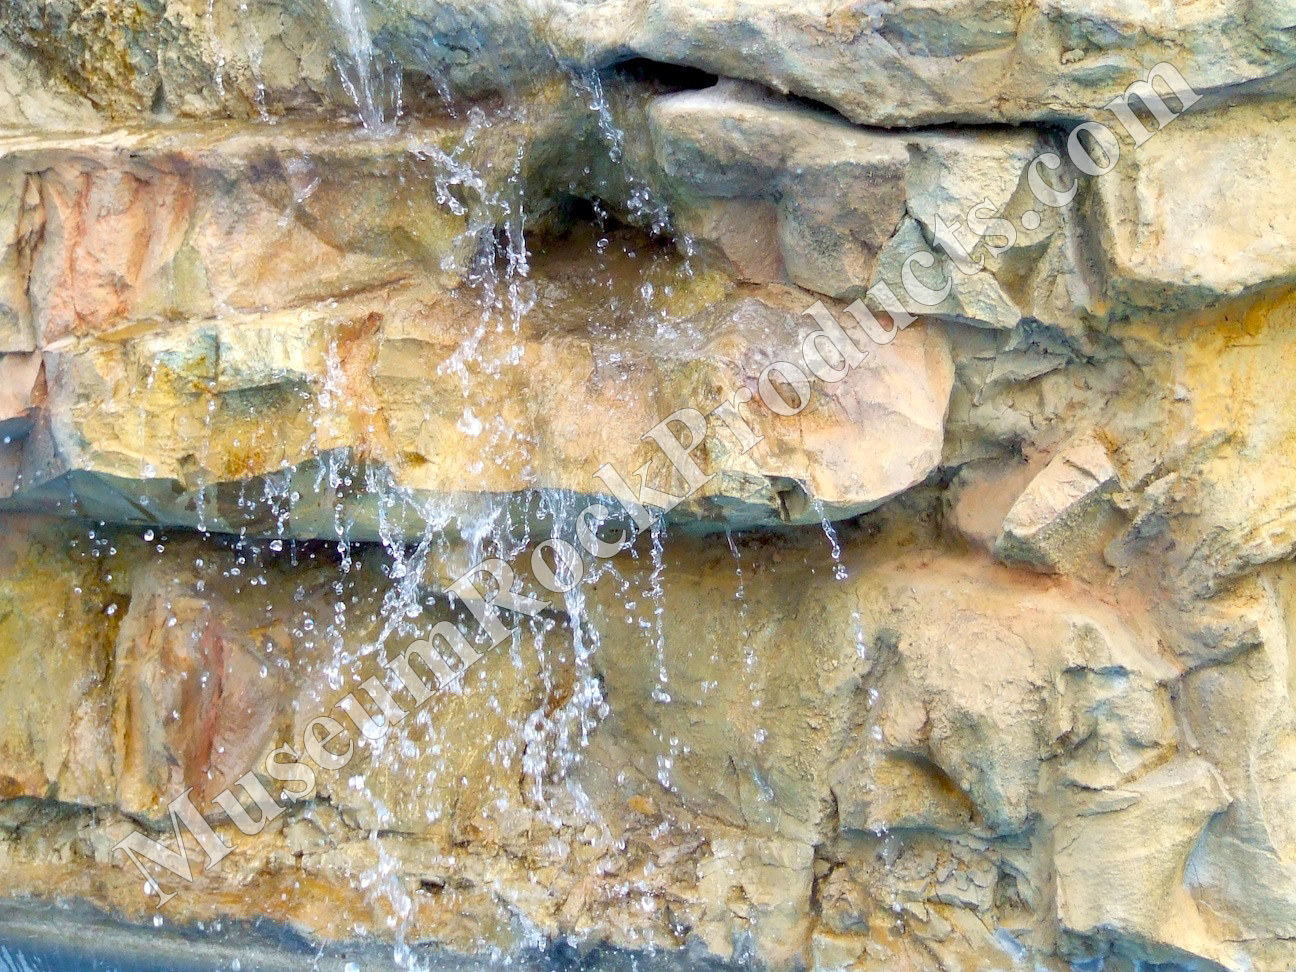 Pool Waterfall 2 by Forest (museumrock.com) Boone